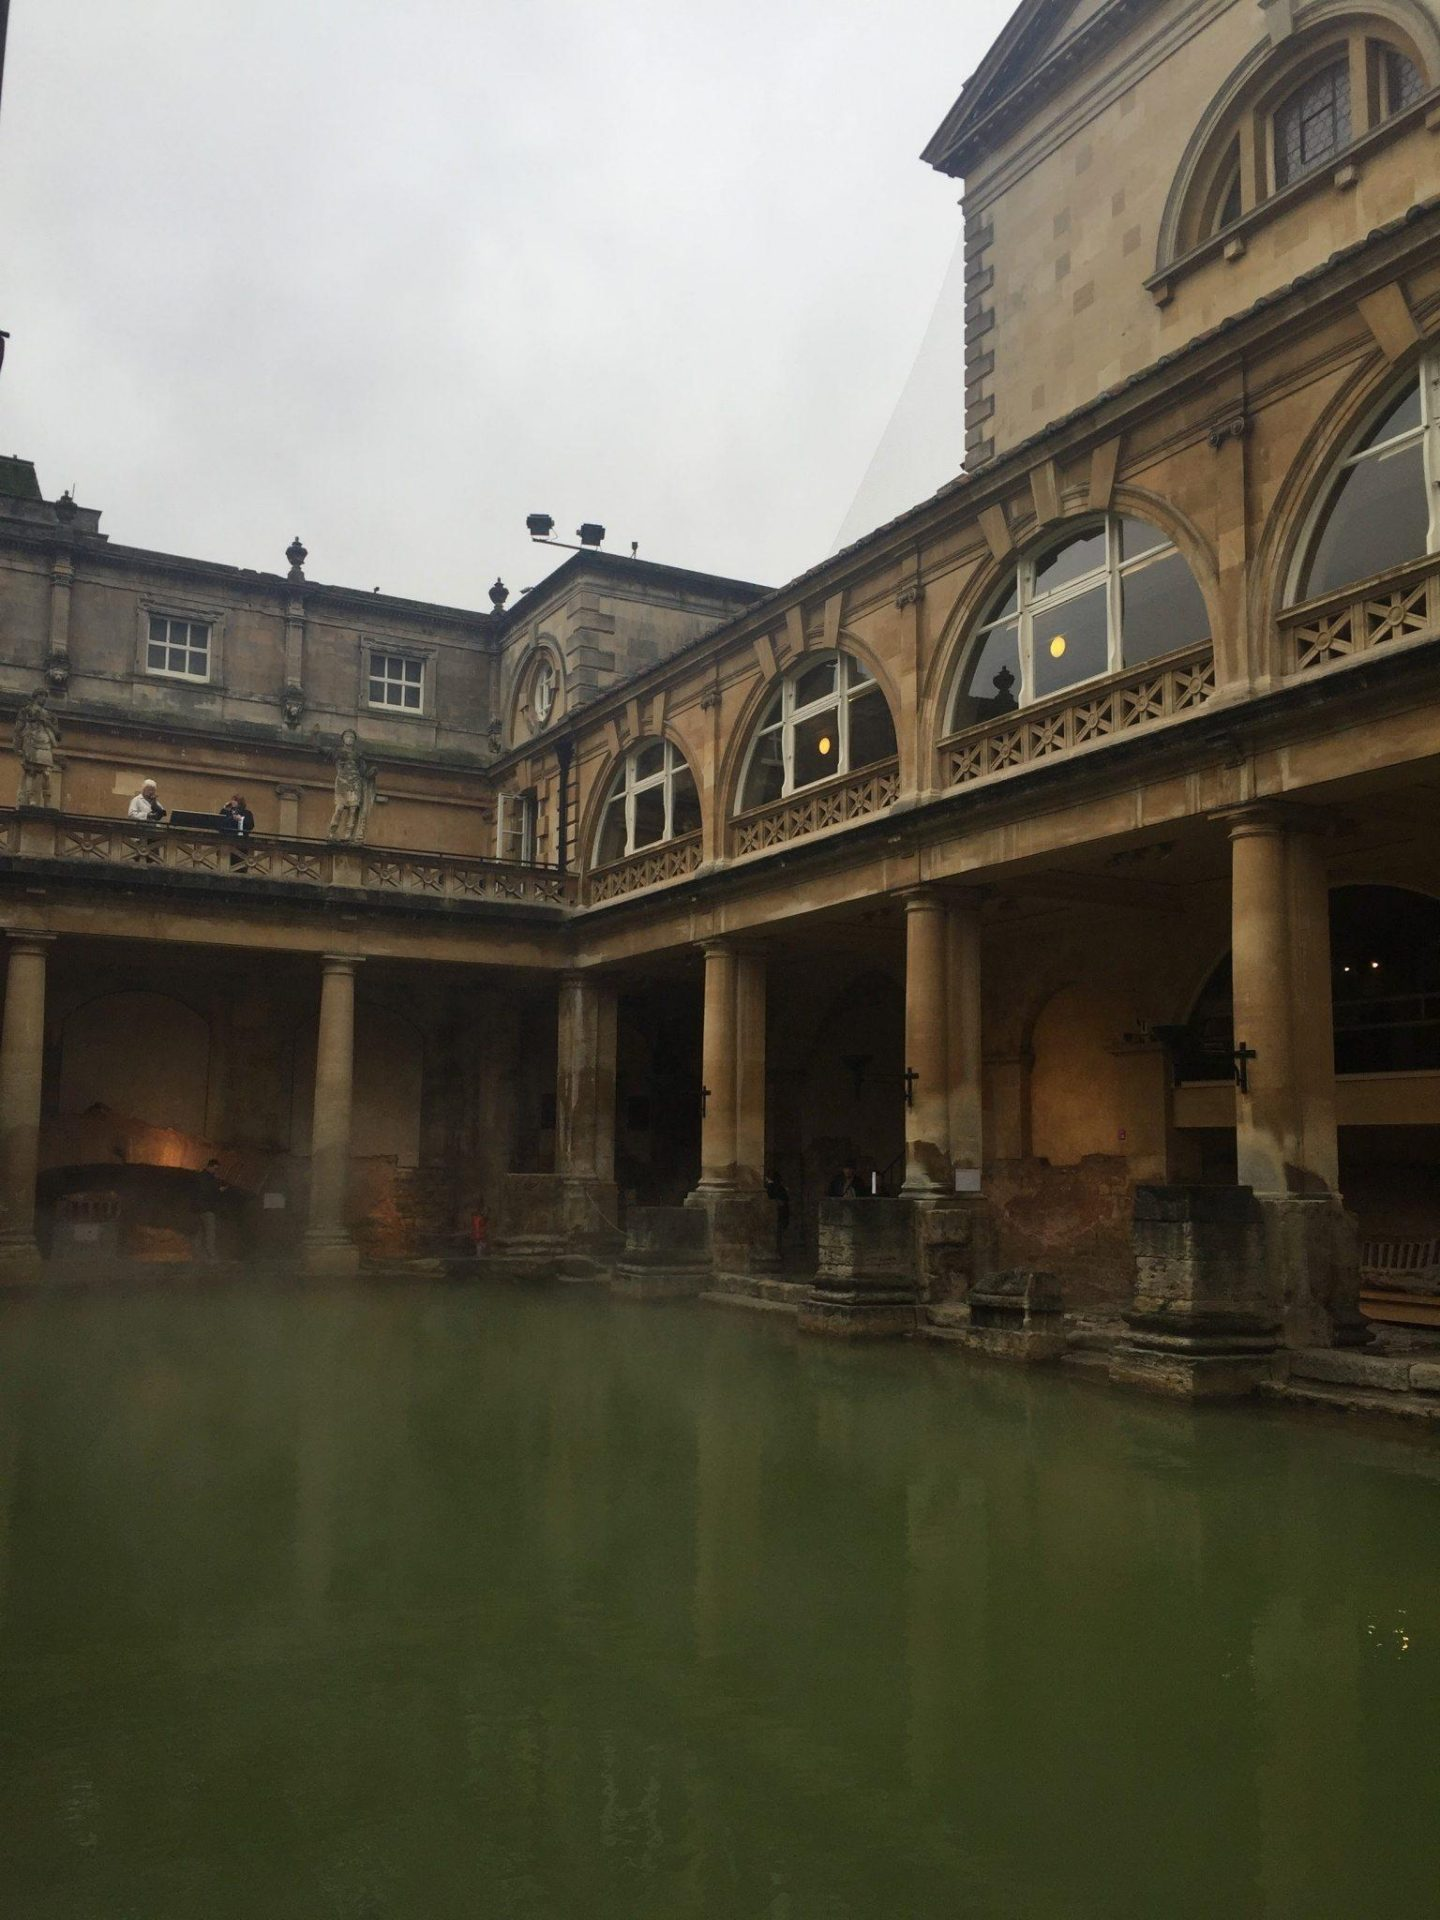 Adventures in Europe | How to spend a day in Bath, United Kingdom